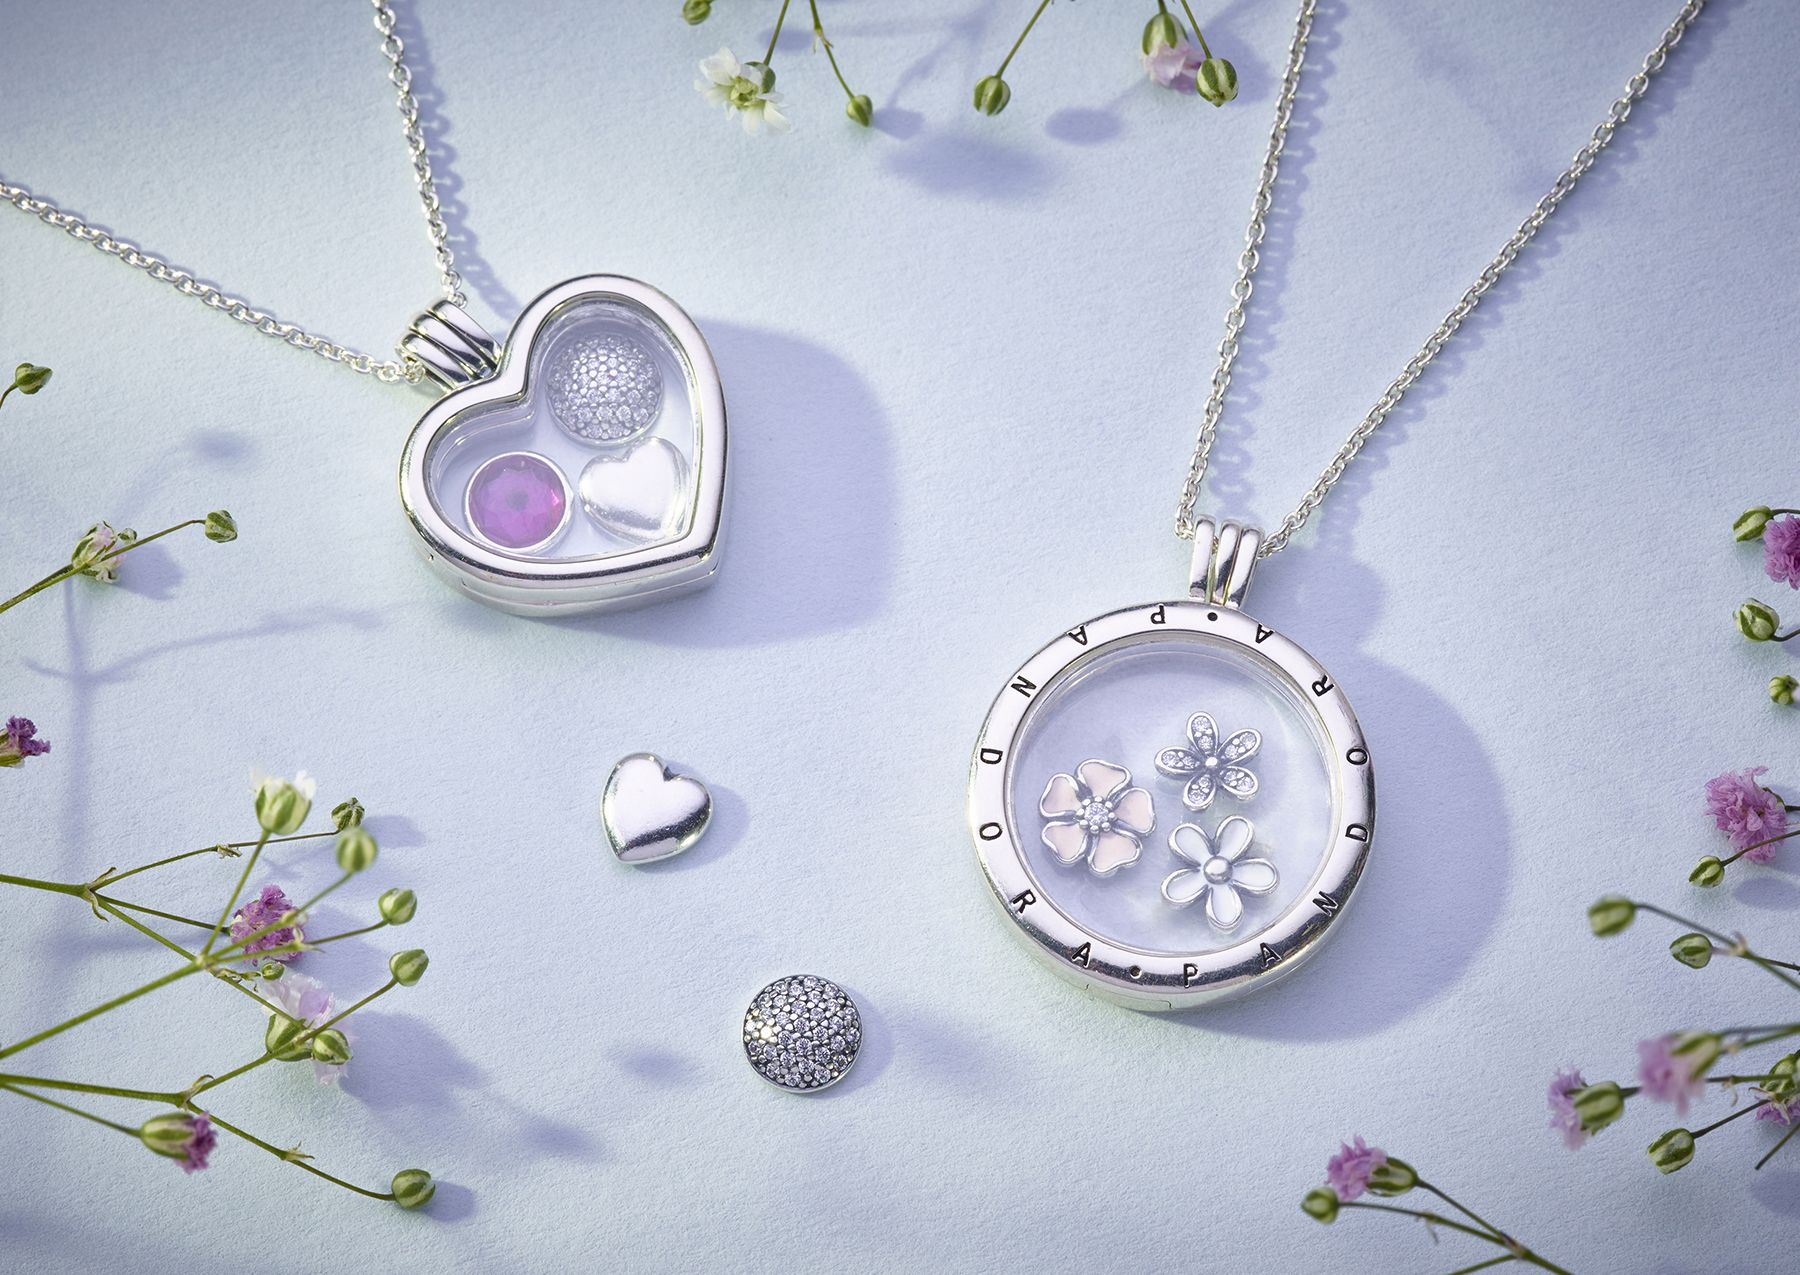 2018 Silver & Gold Jewelry Collection | Pandora Lockets In 2019 Throughout Recent Classic Flower Locket Element Necklaces (Gallery 15 of 25)